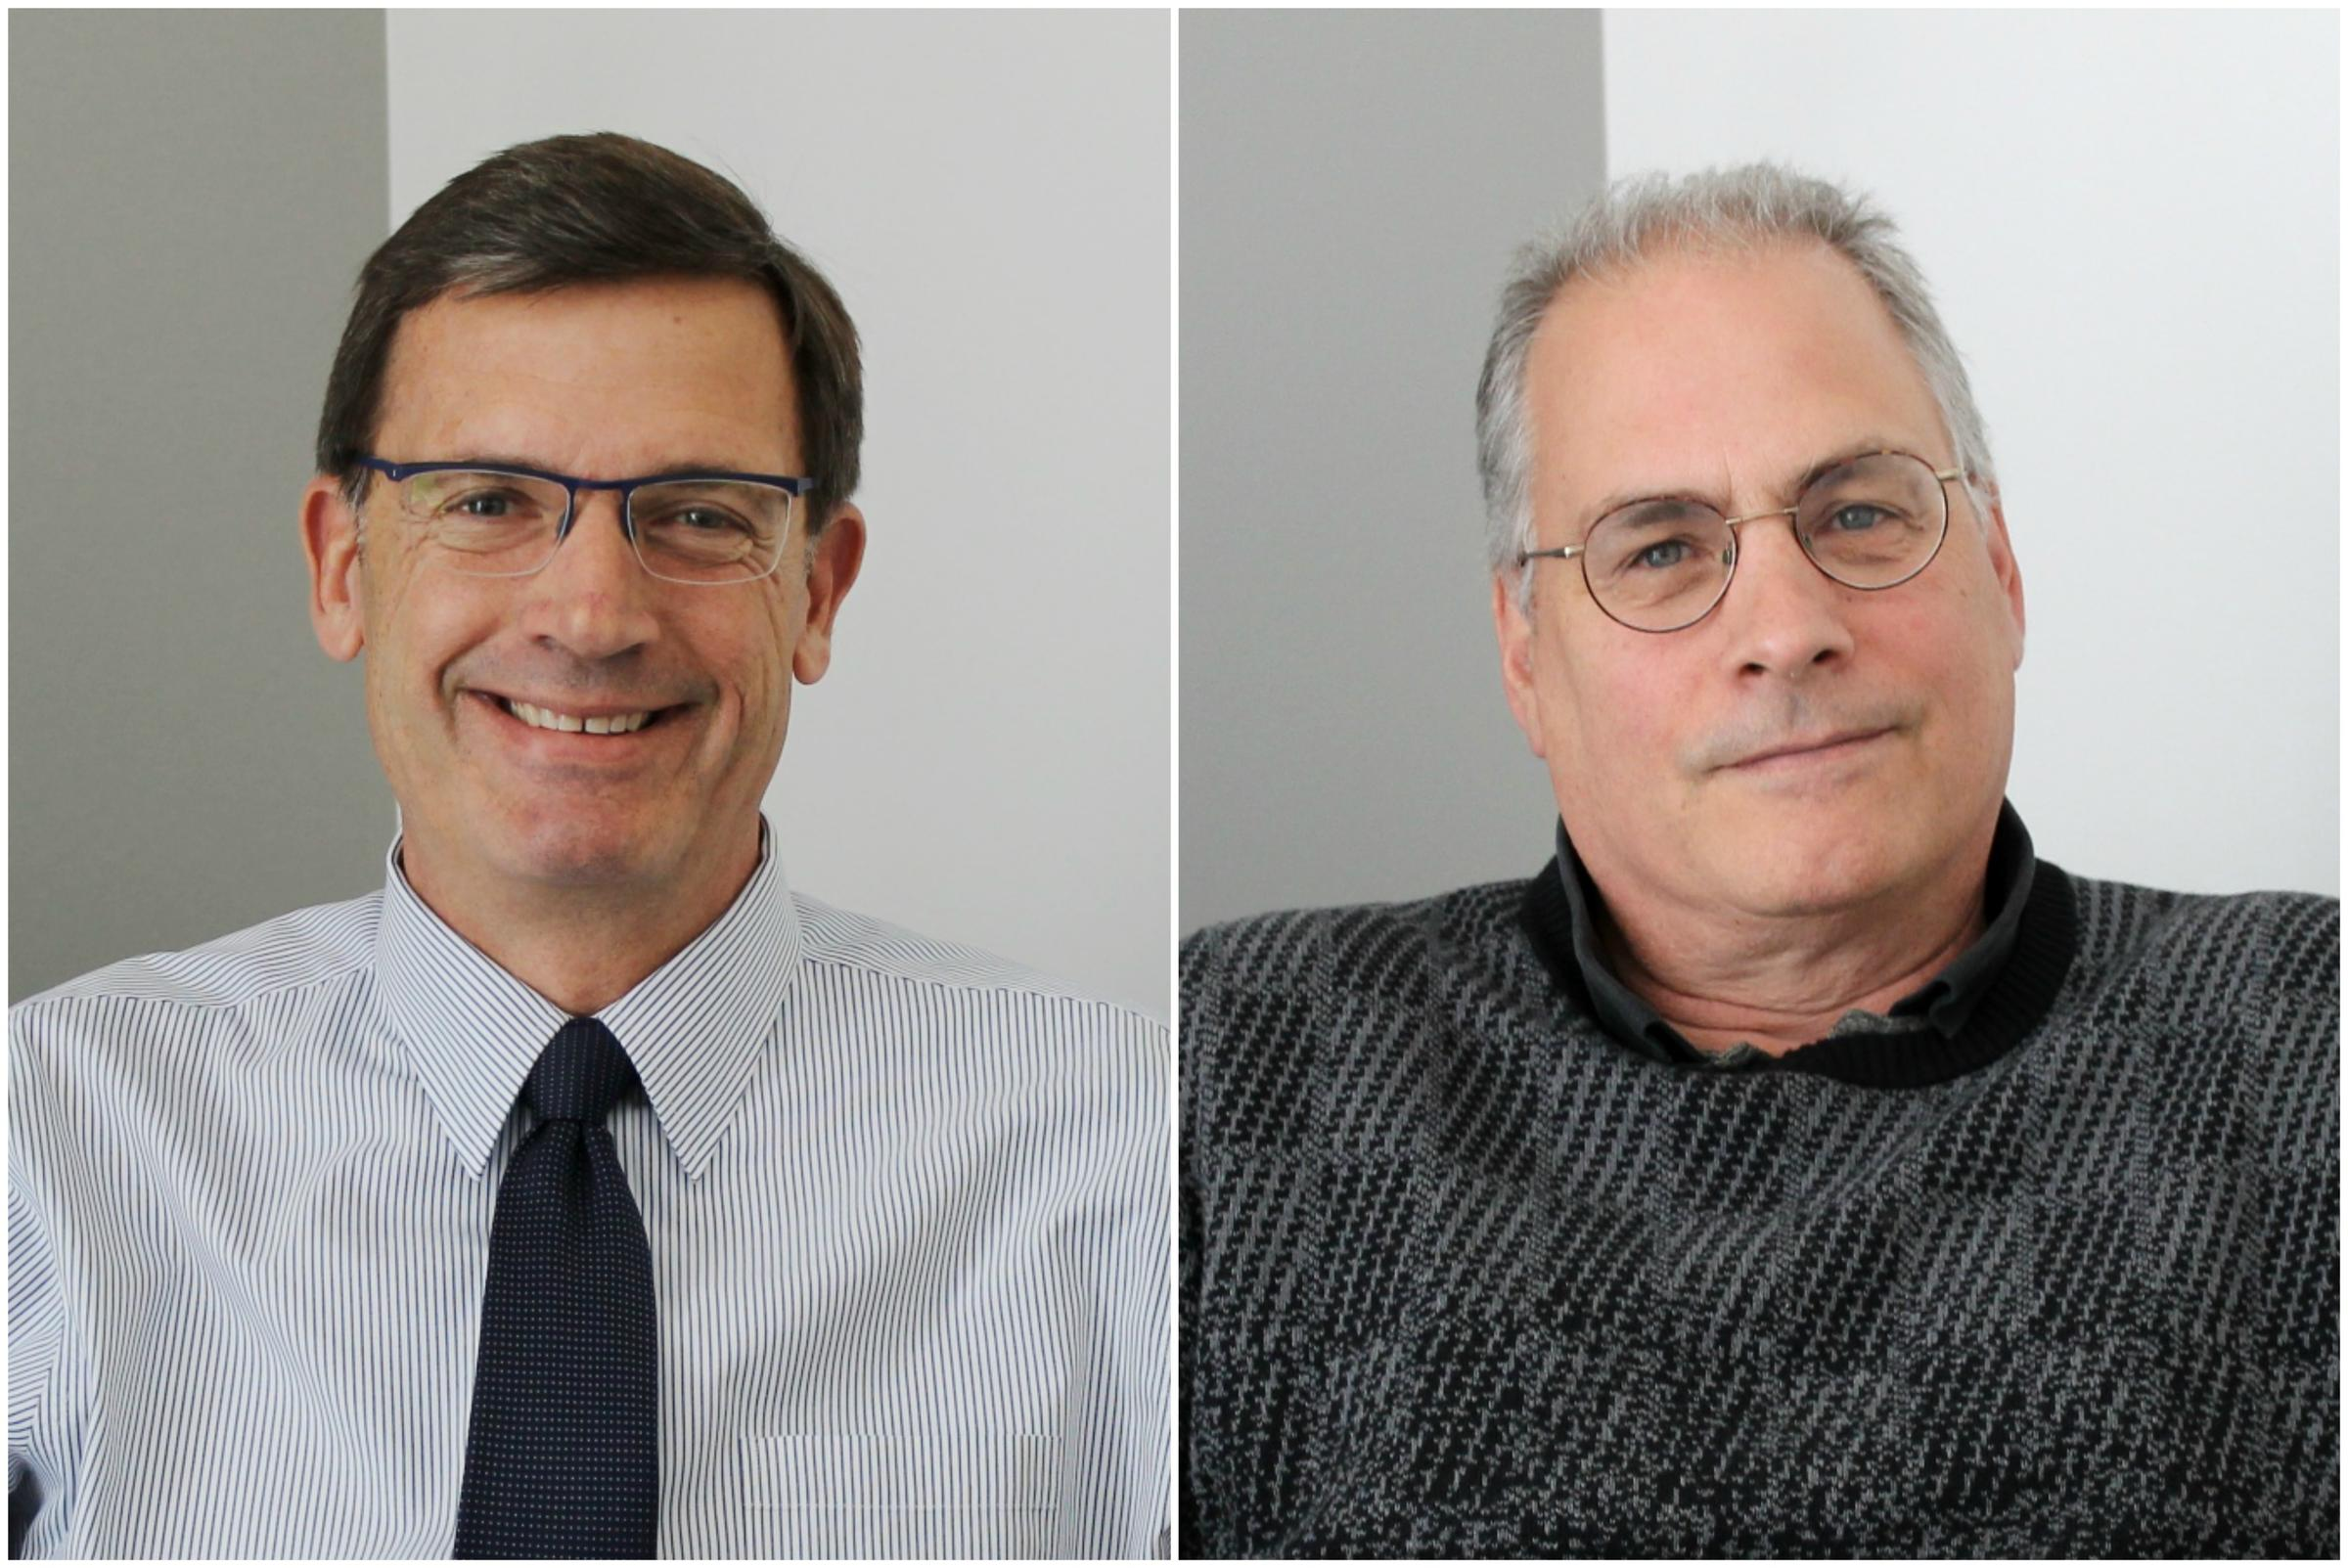 Dr. John Constantino and Steve Houston talked about understanding autism and the latest research in the diagnosis and treatment of